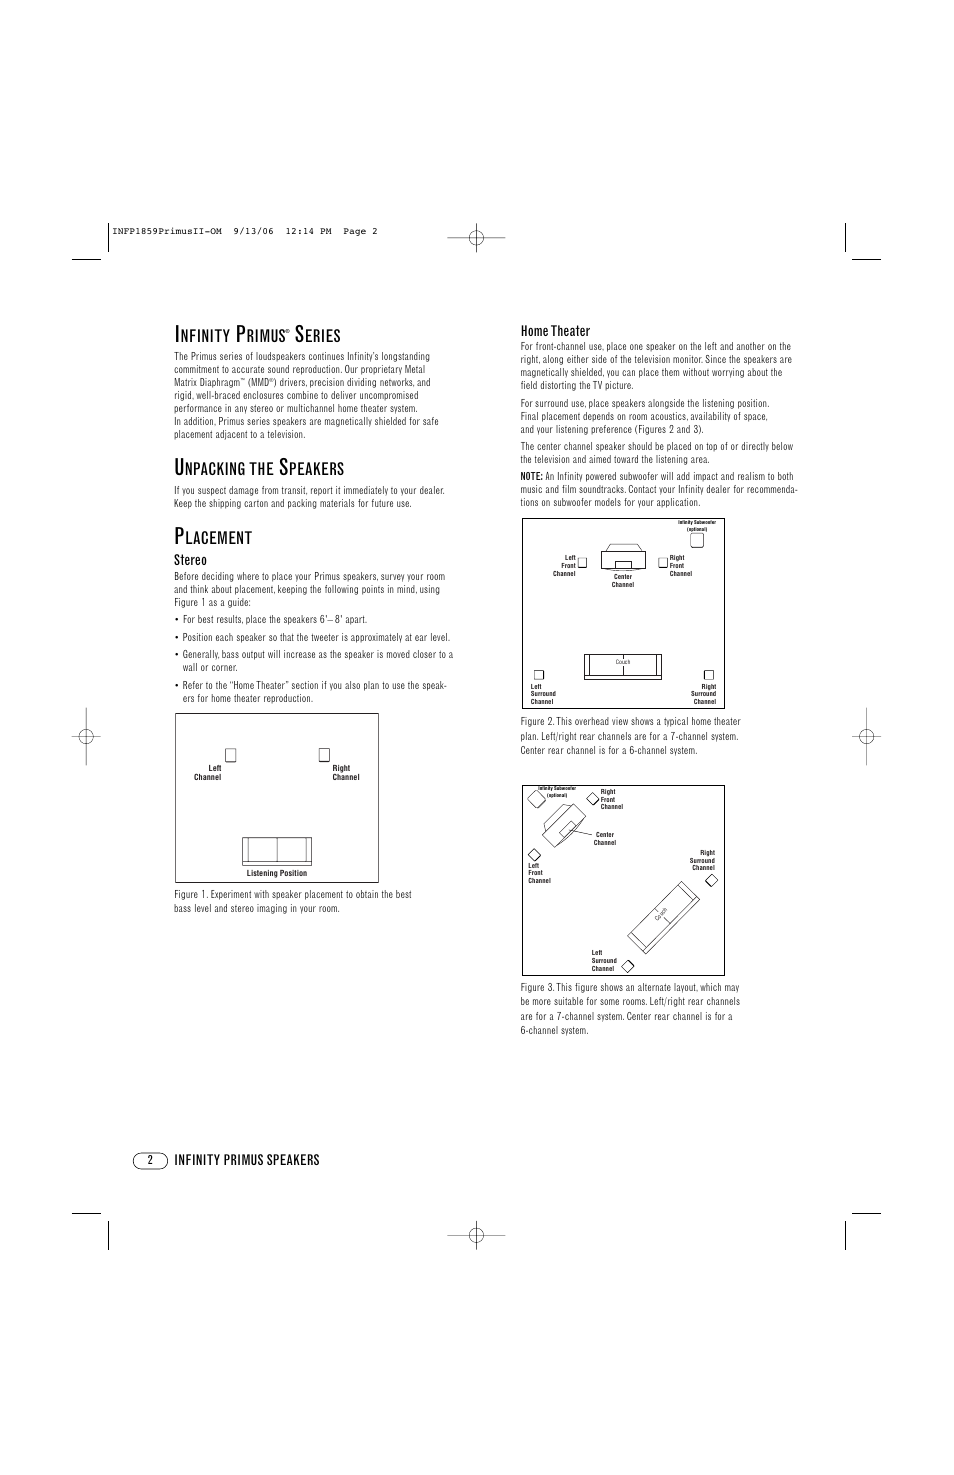 nfinity, rimus, eries | infinity primus pc250 user manual | page 2